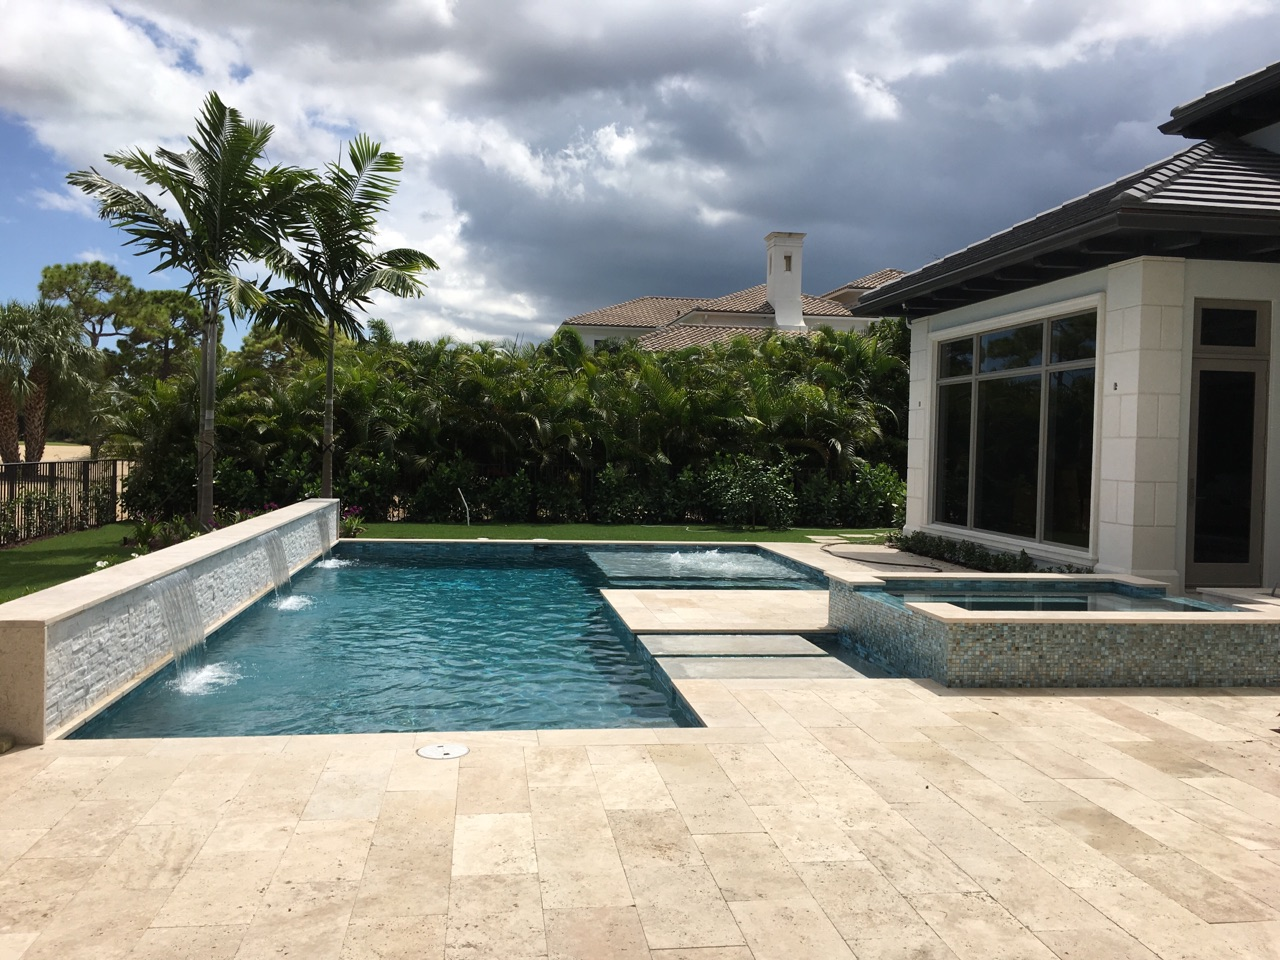 rhr pools of jupiter fl dark interior pool with raised wall and sheer decent water feature